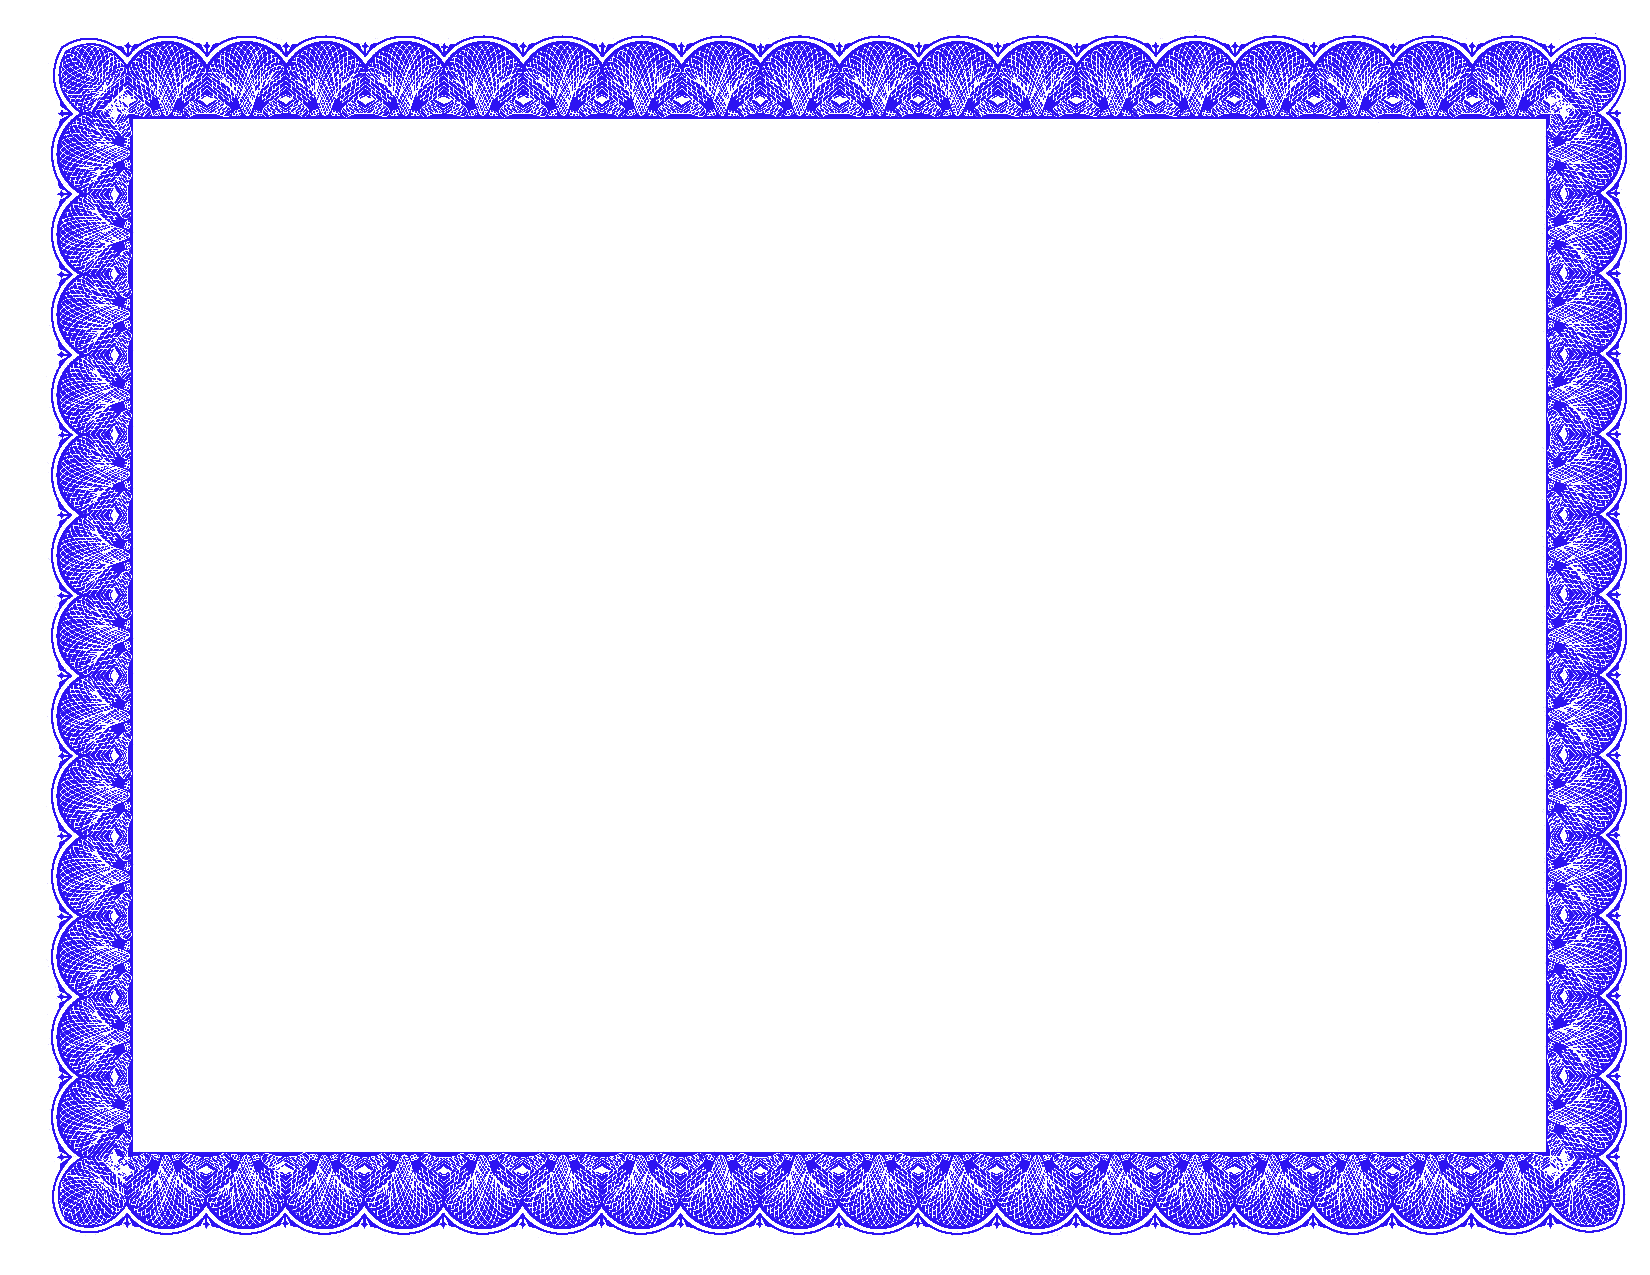 Fancy ideal vistalist co. Certificate border png